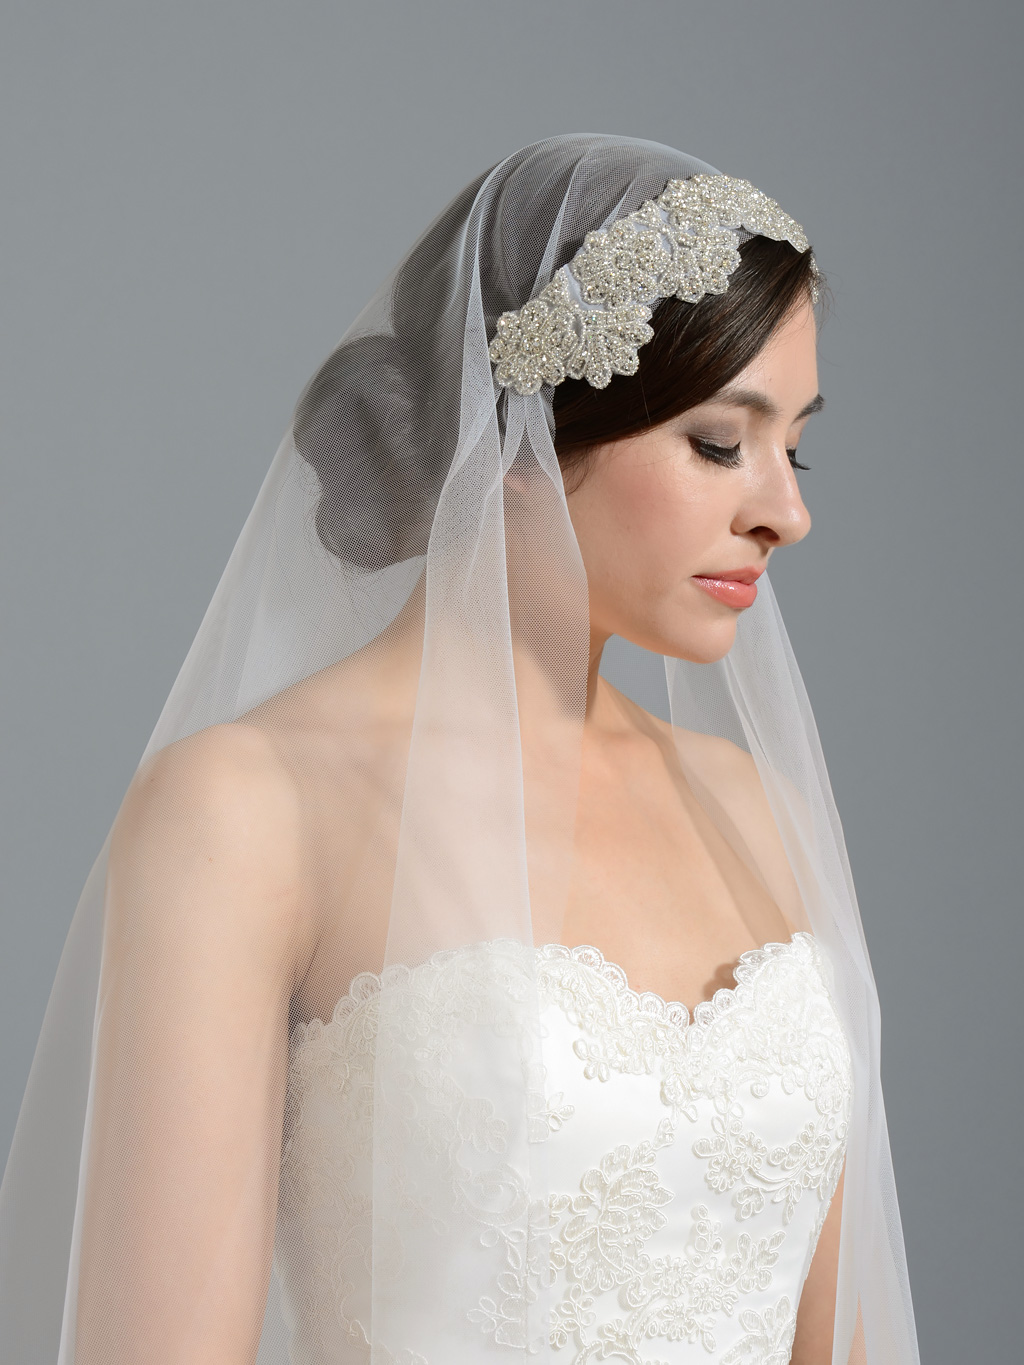 Image Result For Good Hairstyles For Weddings